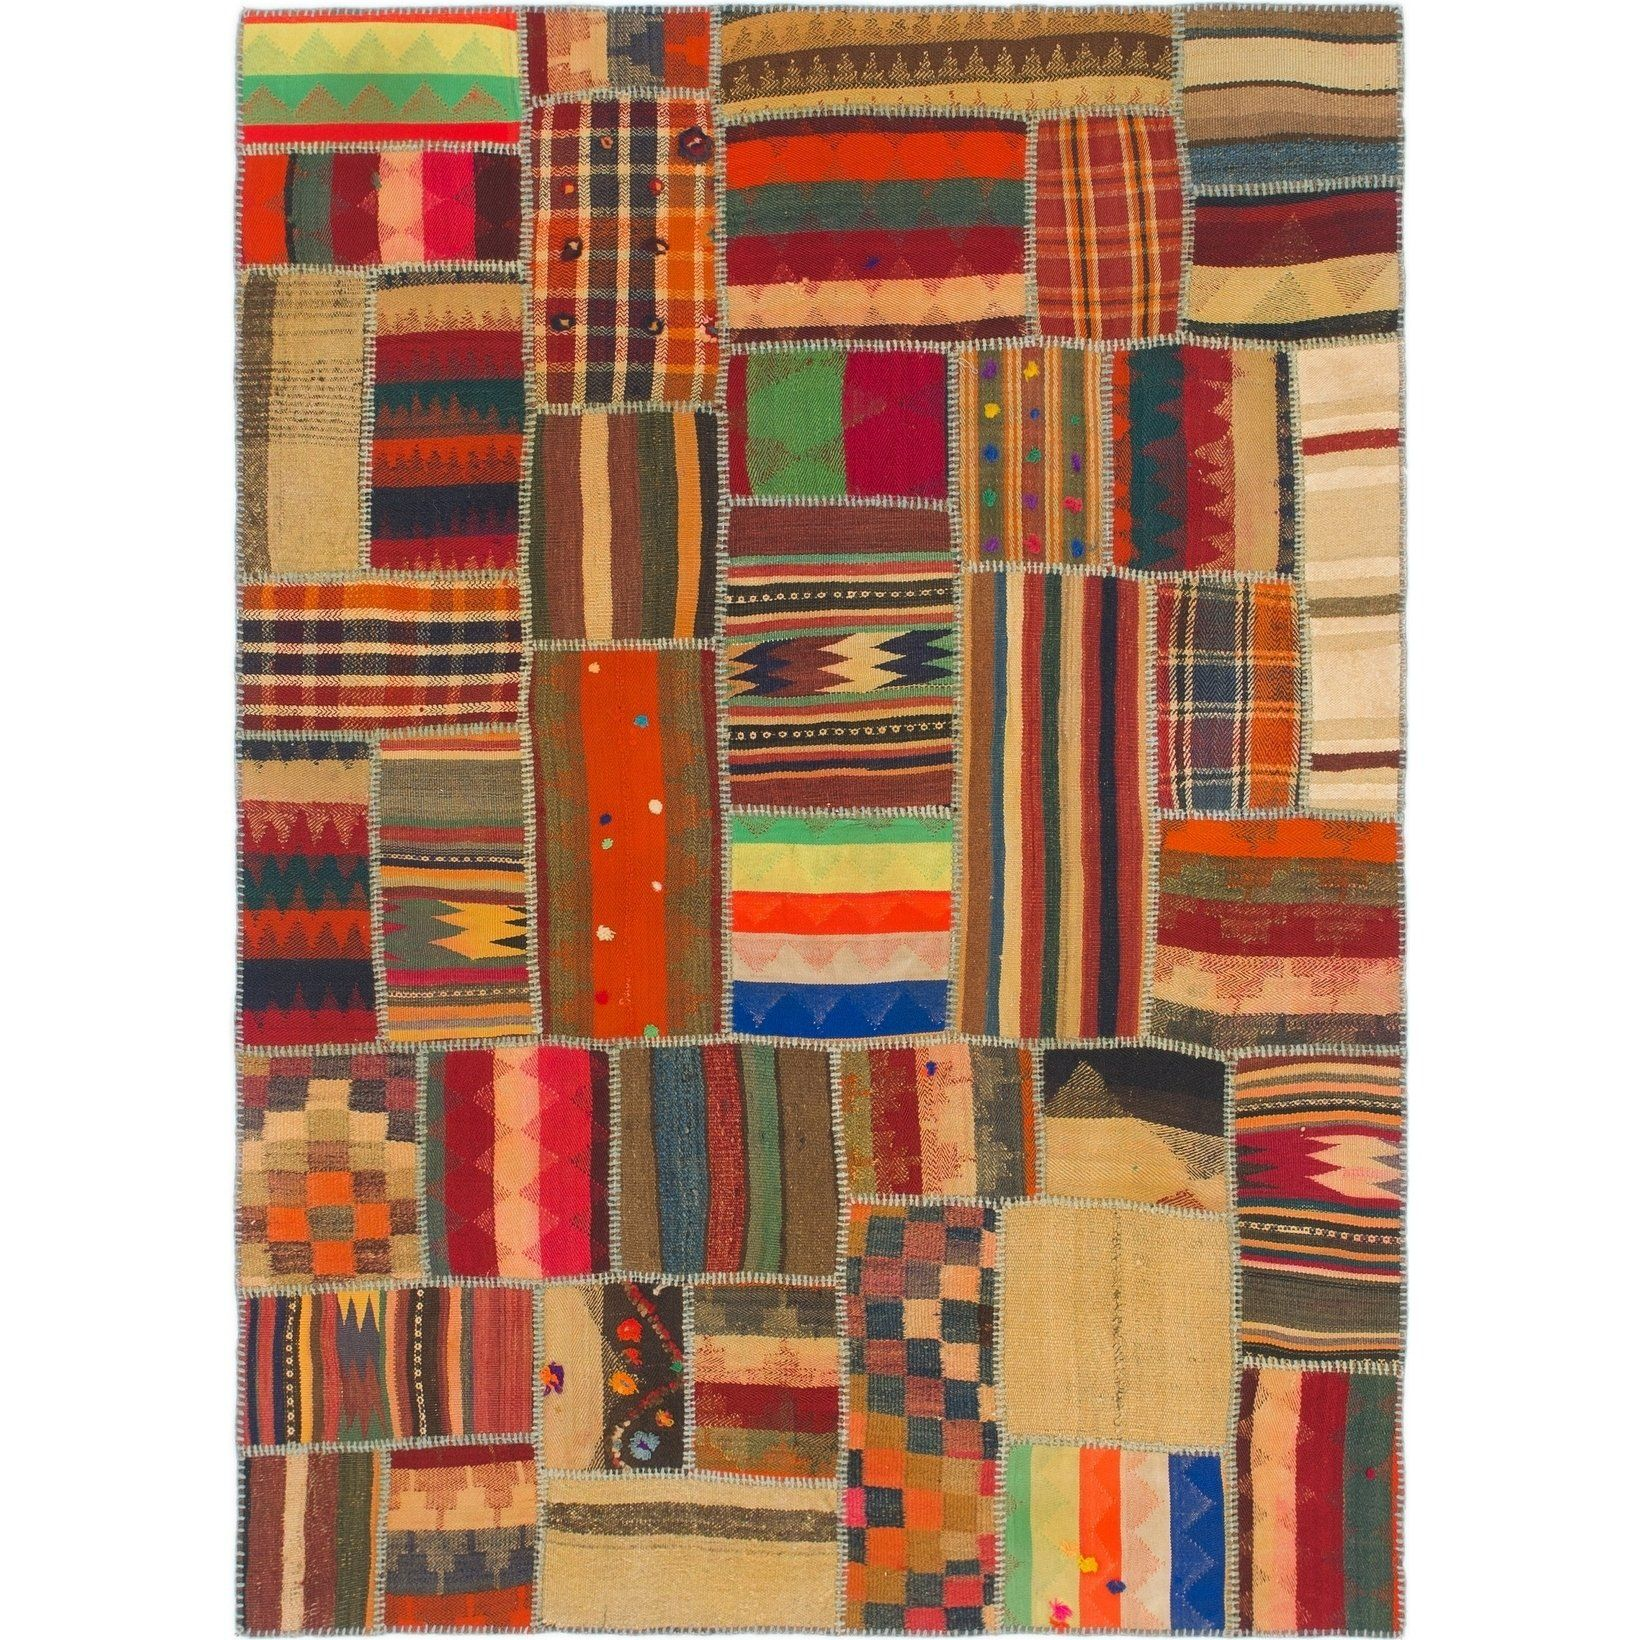 Refurbished Hand Woven Kilim Patchwork Wool Area Rug 5 X 6 10